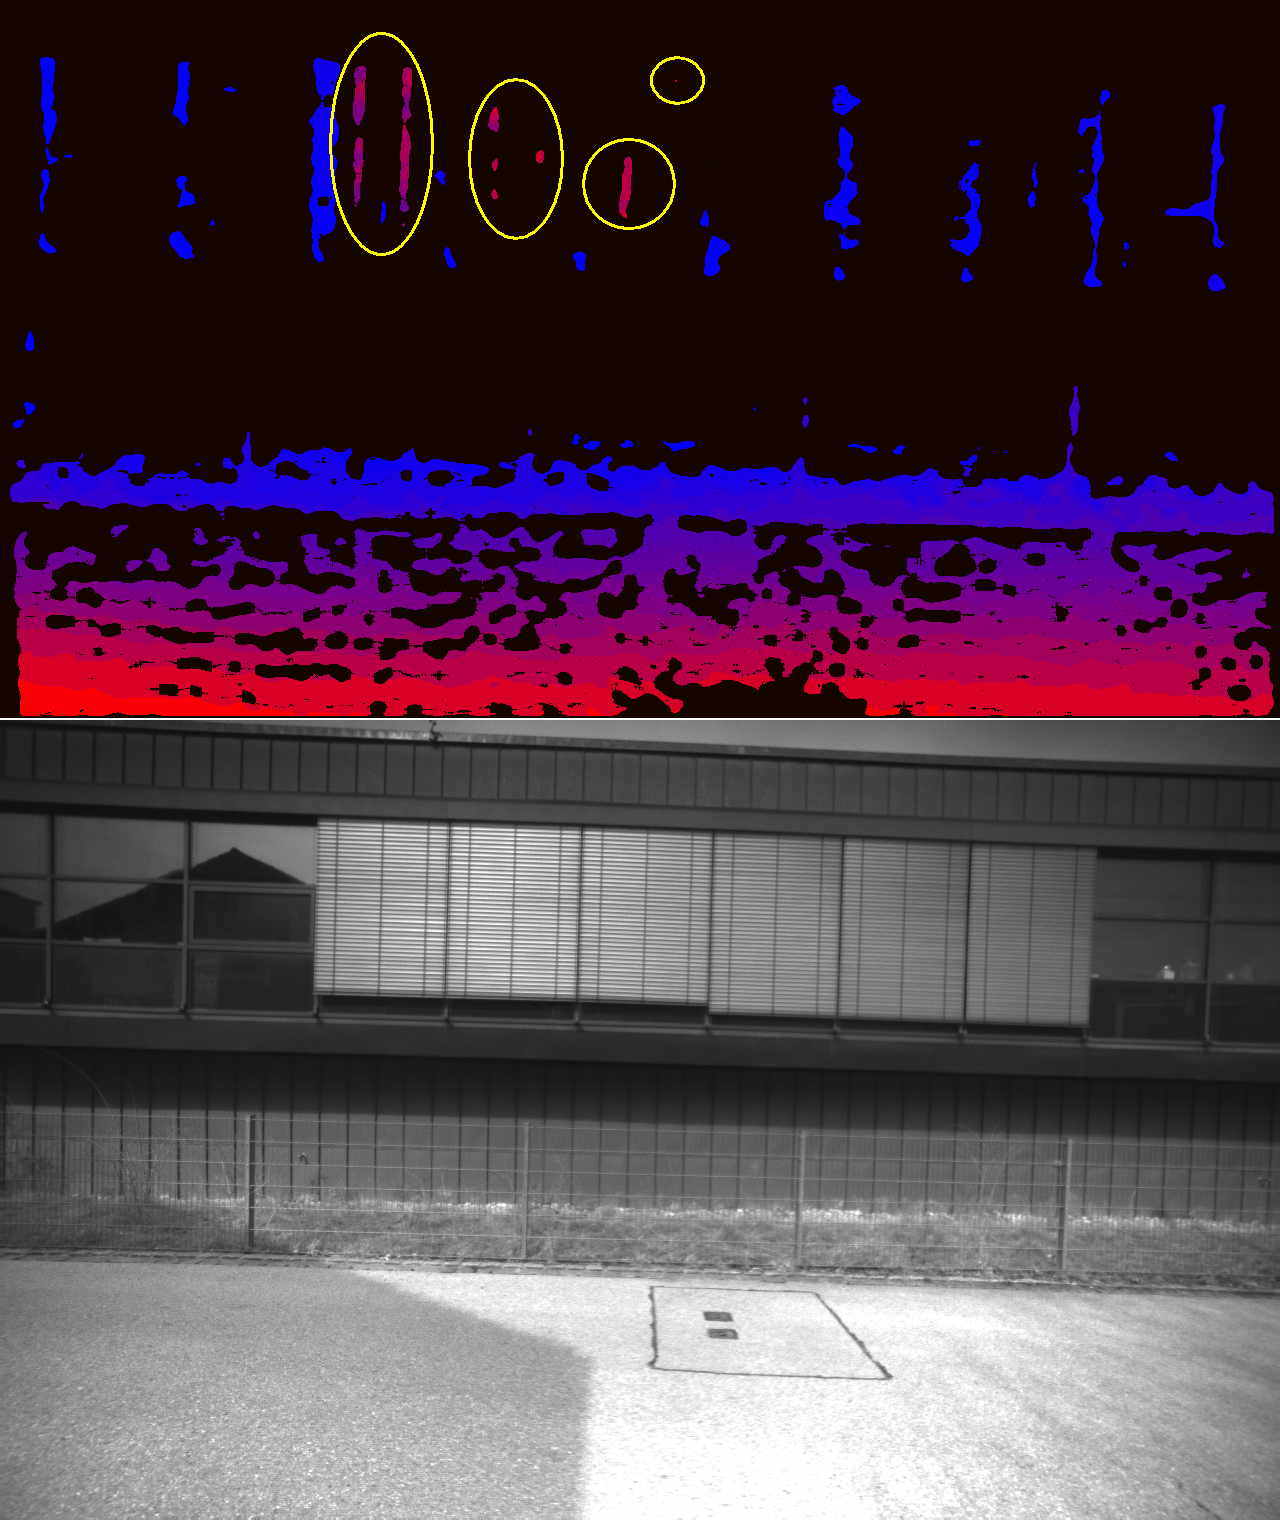 Figure 3. A case in which parts of the blinds on the windows are wrongly indicating depth which is very close to the camera. Near distances are represented in an intense red, while the farther away it gets, the coloring changes to blue.